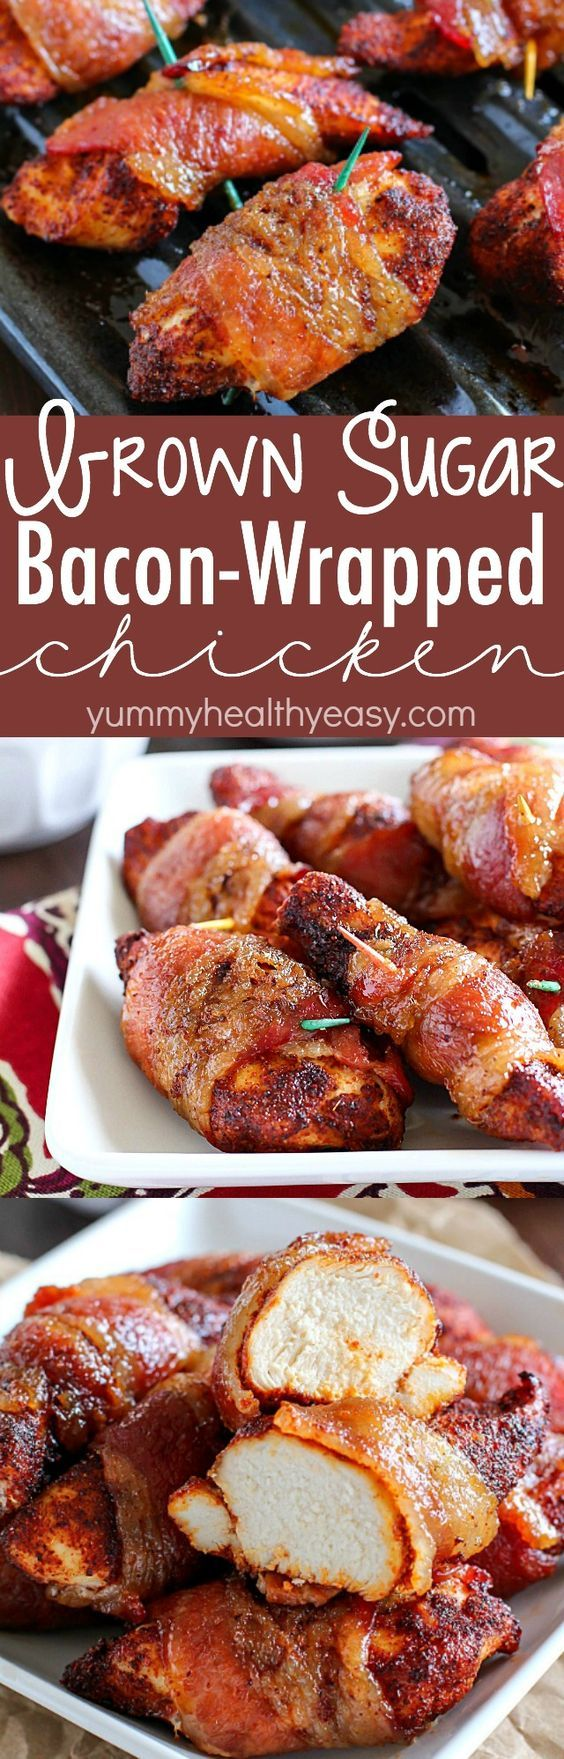 Brown Sugar Bacon Wrapped Chicken is one of my favorite dinners! Making this again tonight! You roll the chicken in spices and then wrap in bacon. Then roll in brown sugar and bake. SO easy, tender, j (Chicken Bacon Sandwich)